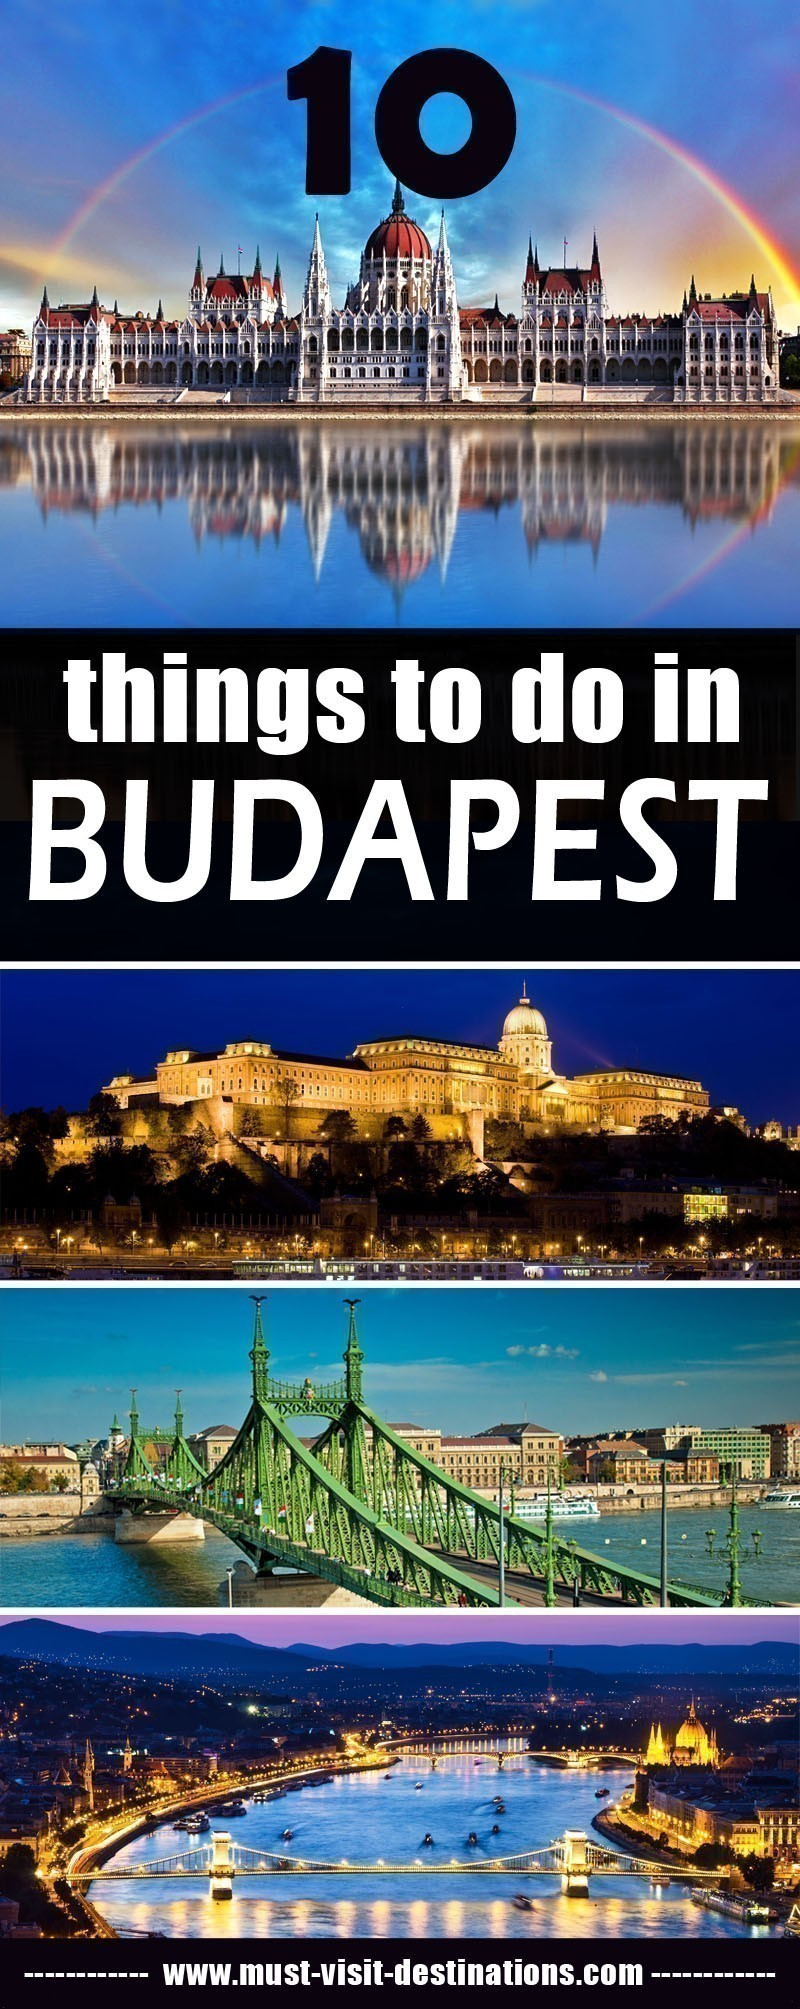 10 Things To Do in Budapest #travel #culture #budapest